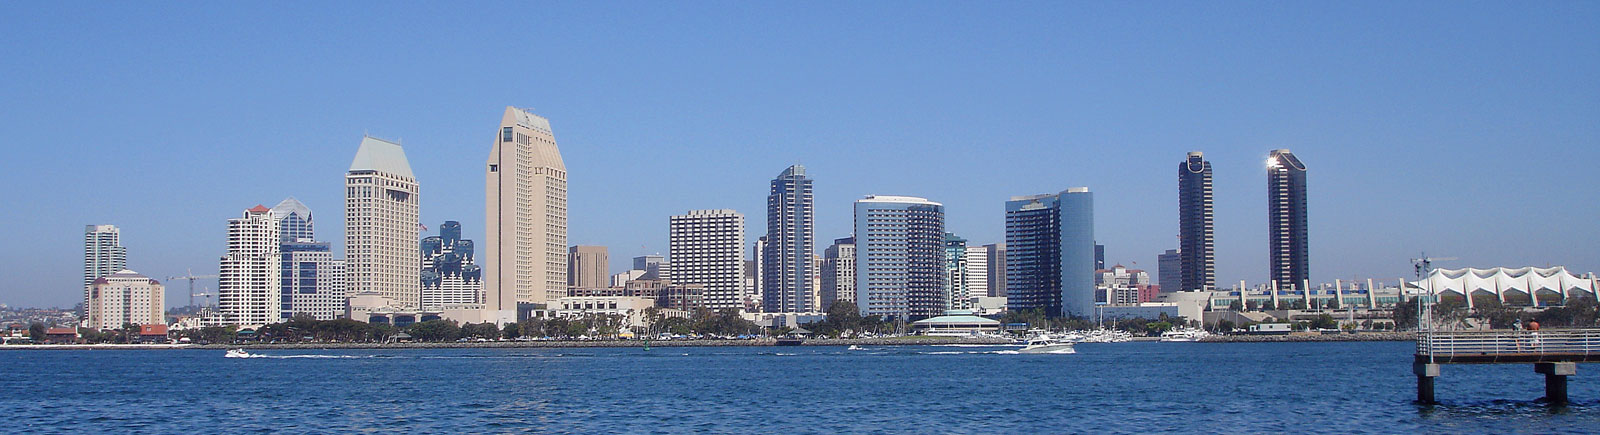 San Diego Convention Center, California